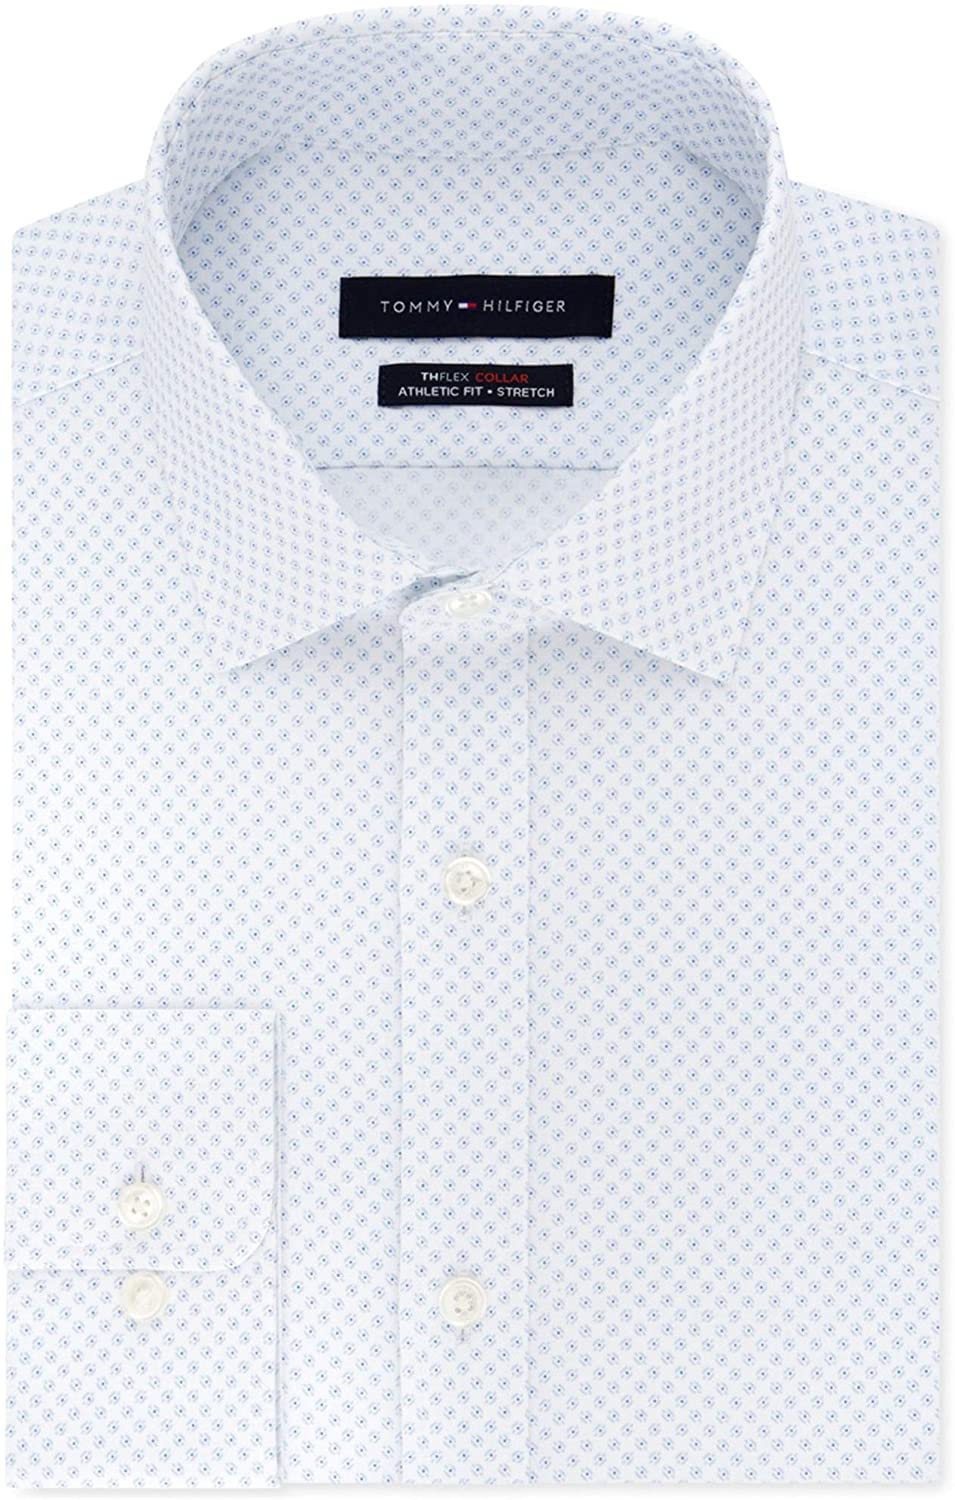 Tommy Hilfiger Mens Flex Collar Button Up Dress Shirt